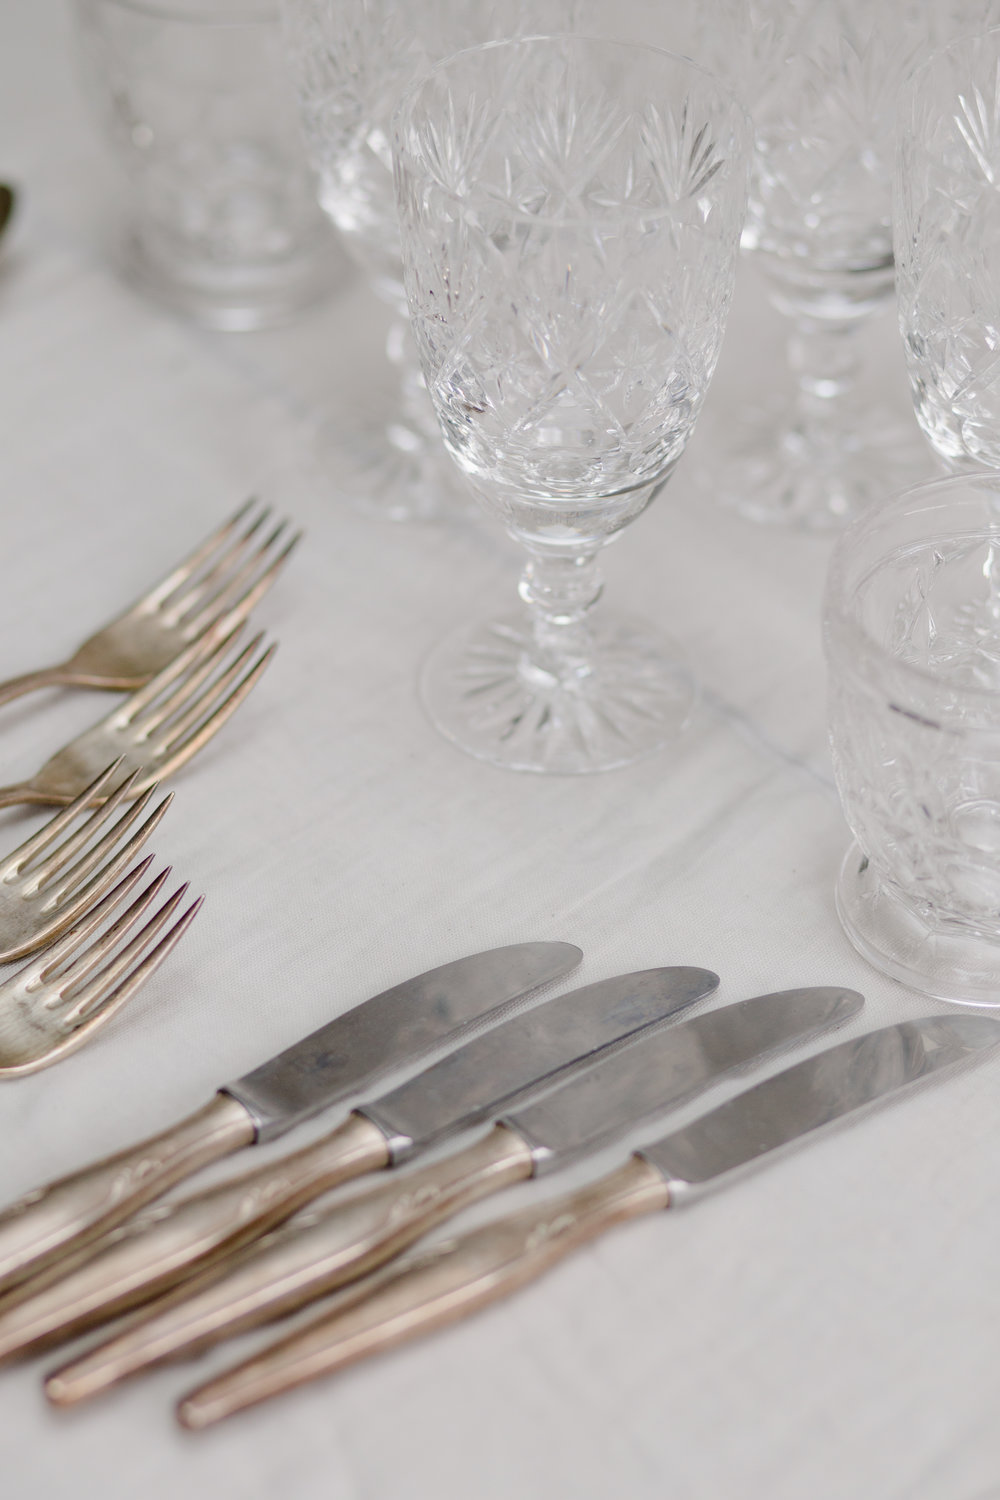 The Timeless Stylist-Antique Cutlery.jpg